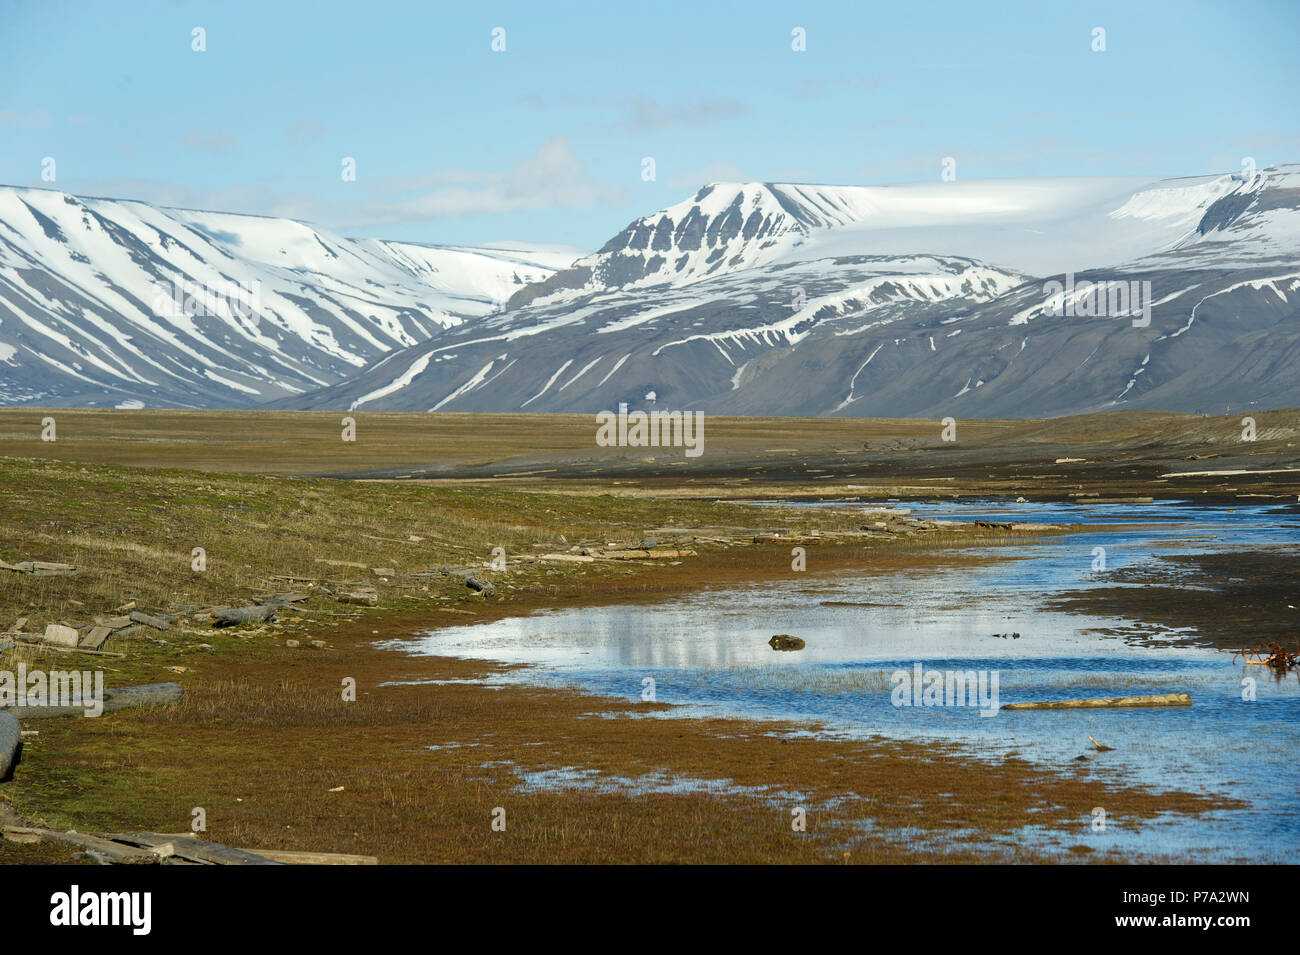 Artic Tundra scene on Spitsbergen, Svalbard, Norway in the Arctic Circle Stock Photo